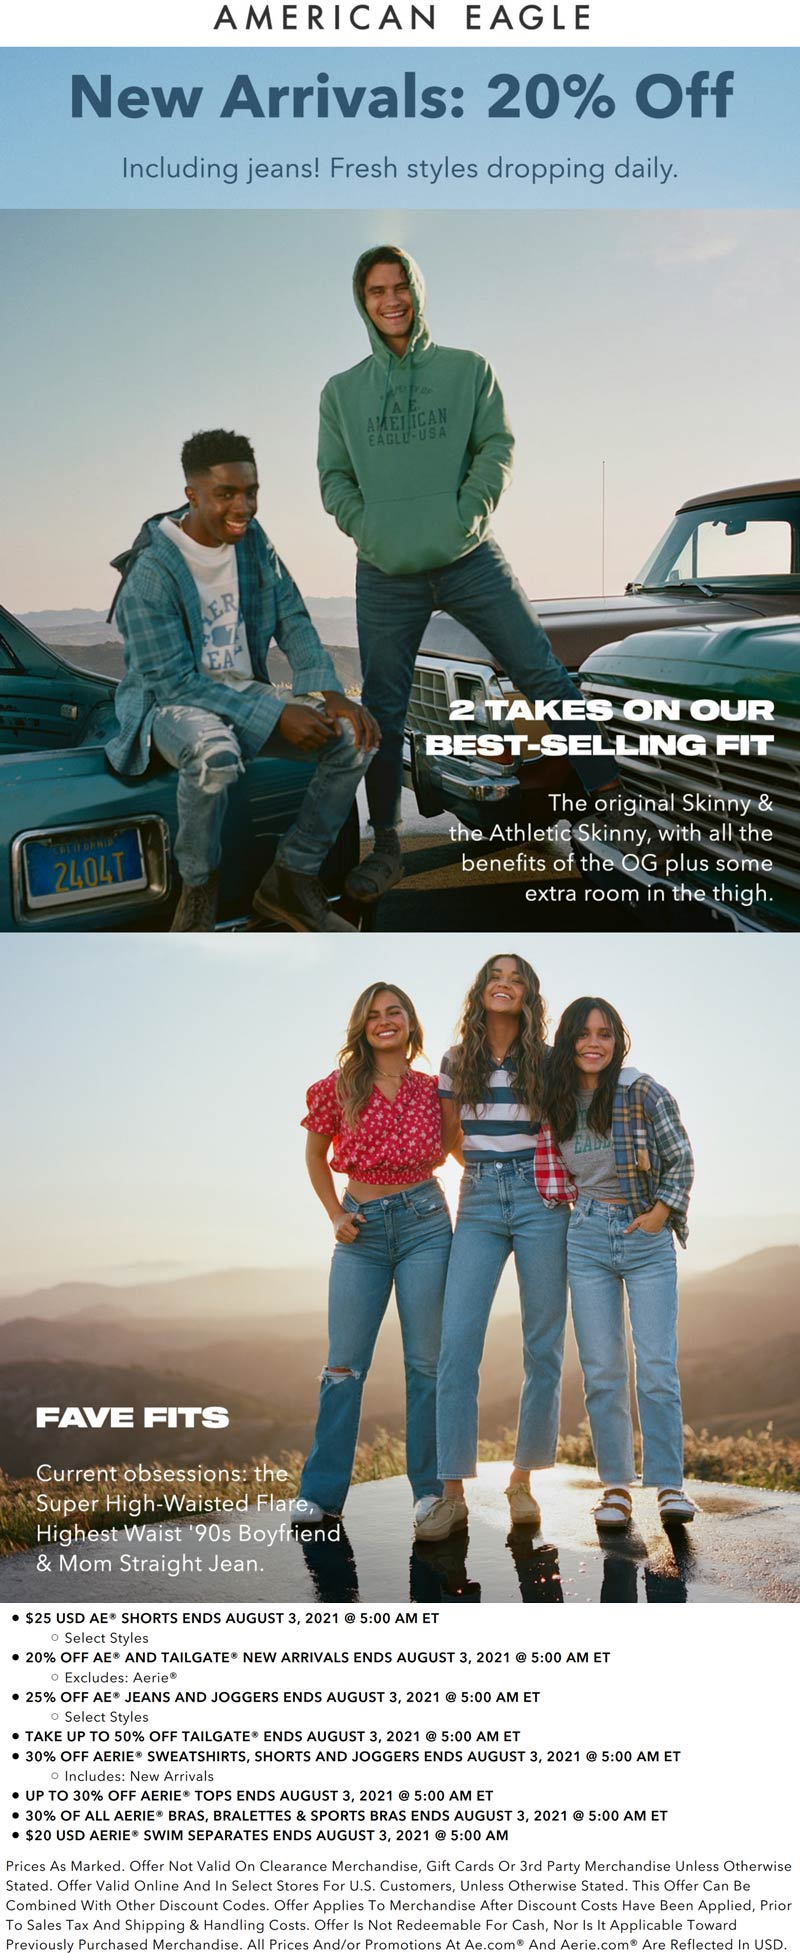 American Eagle stores Coupon  20% off jeans & new arrivals at American Eagle, ditto online #americaneagle